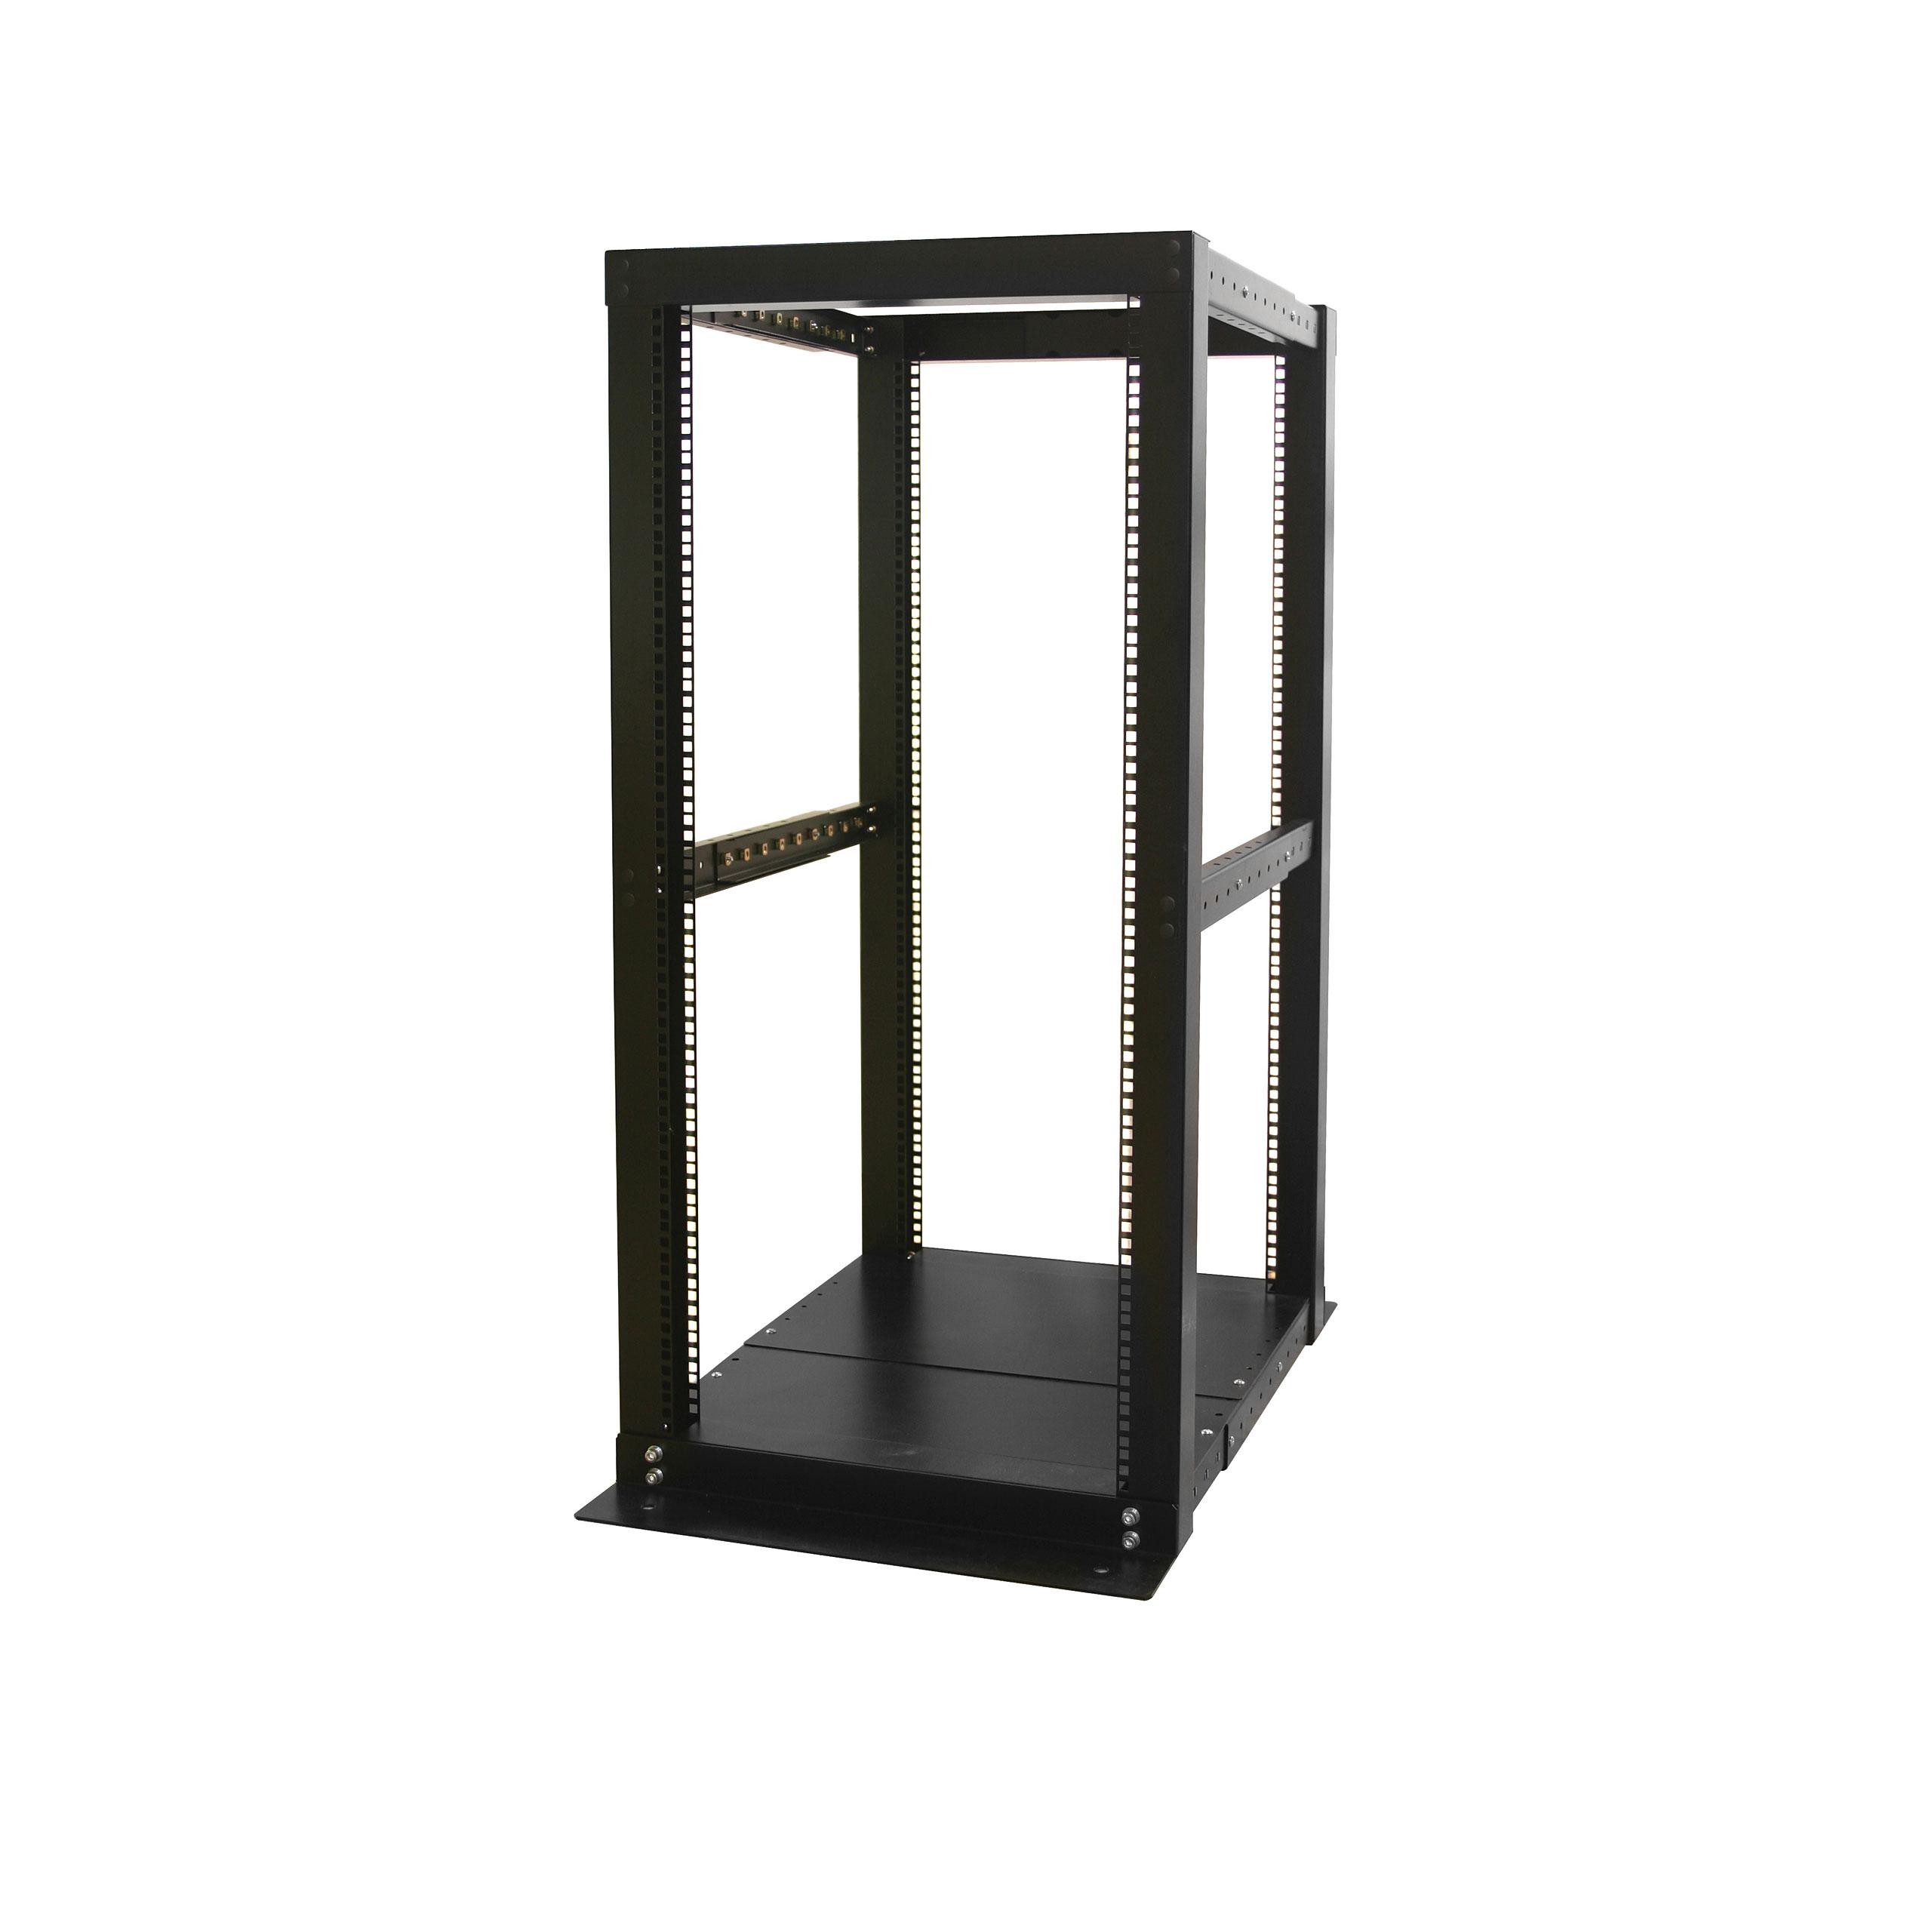 mount equipment wall group rack floor systems inch enclosure series proline generic